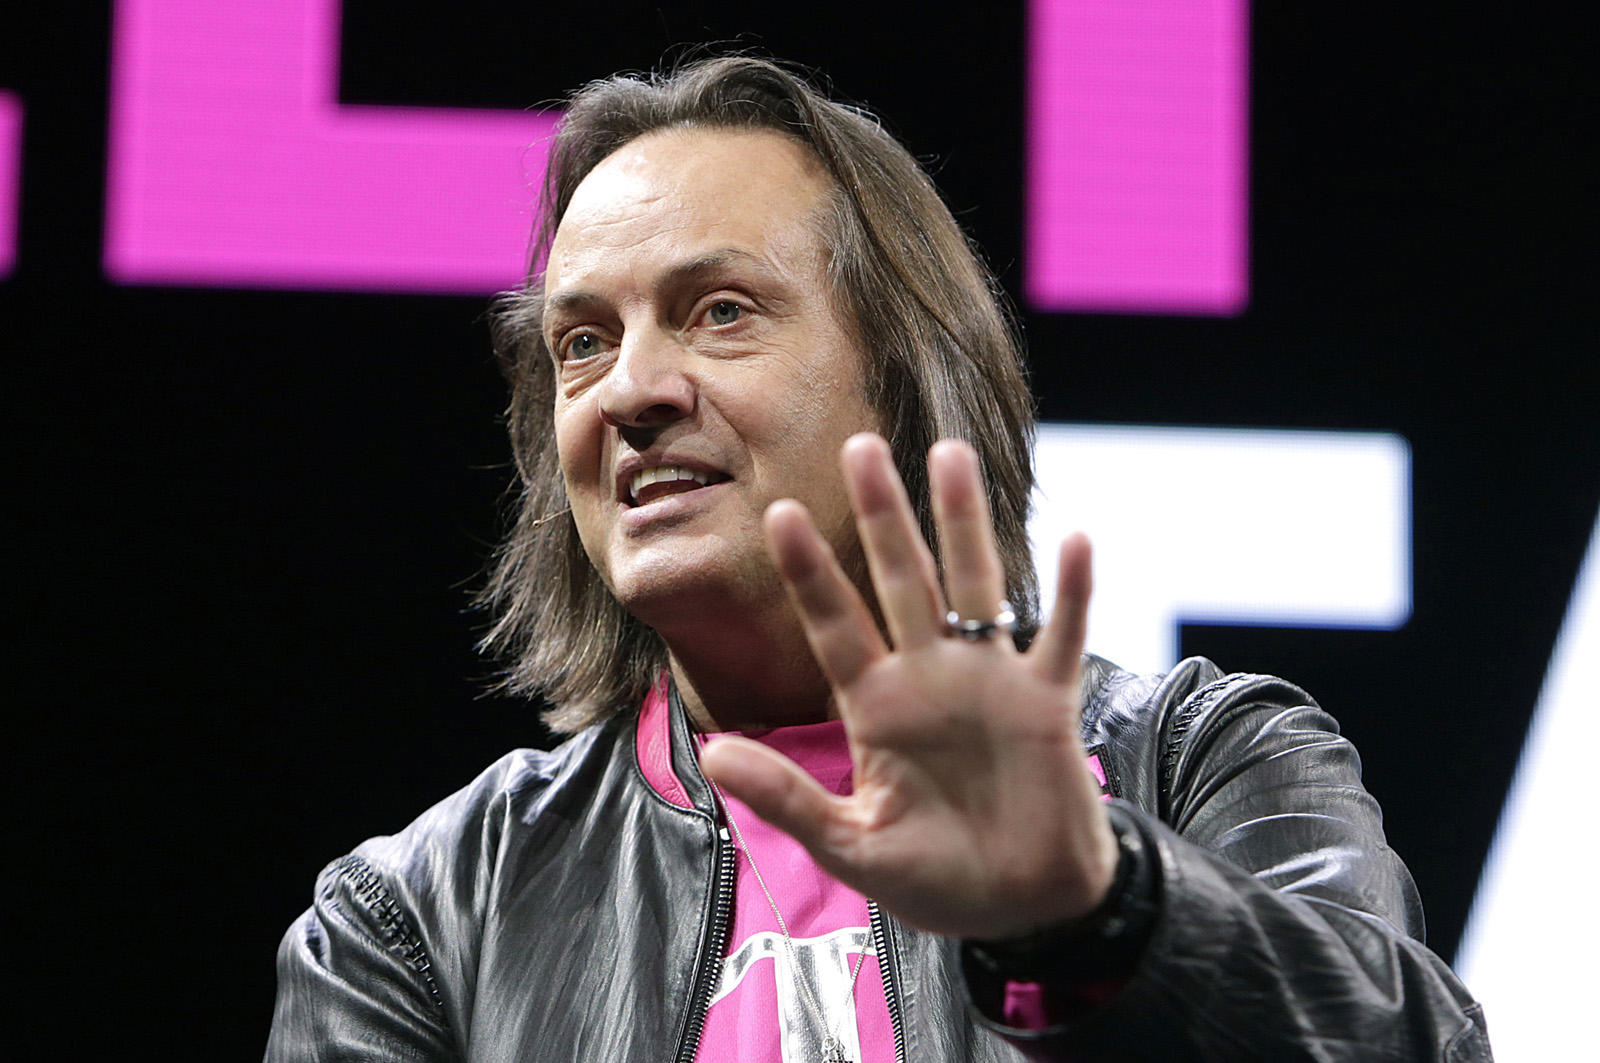 T-Mobile increases high-speed unlimited data 'cap' to 50GB